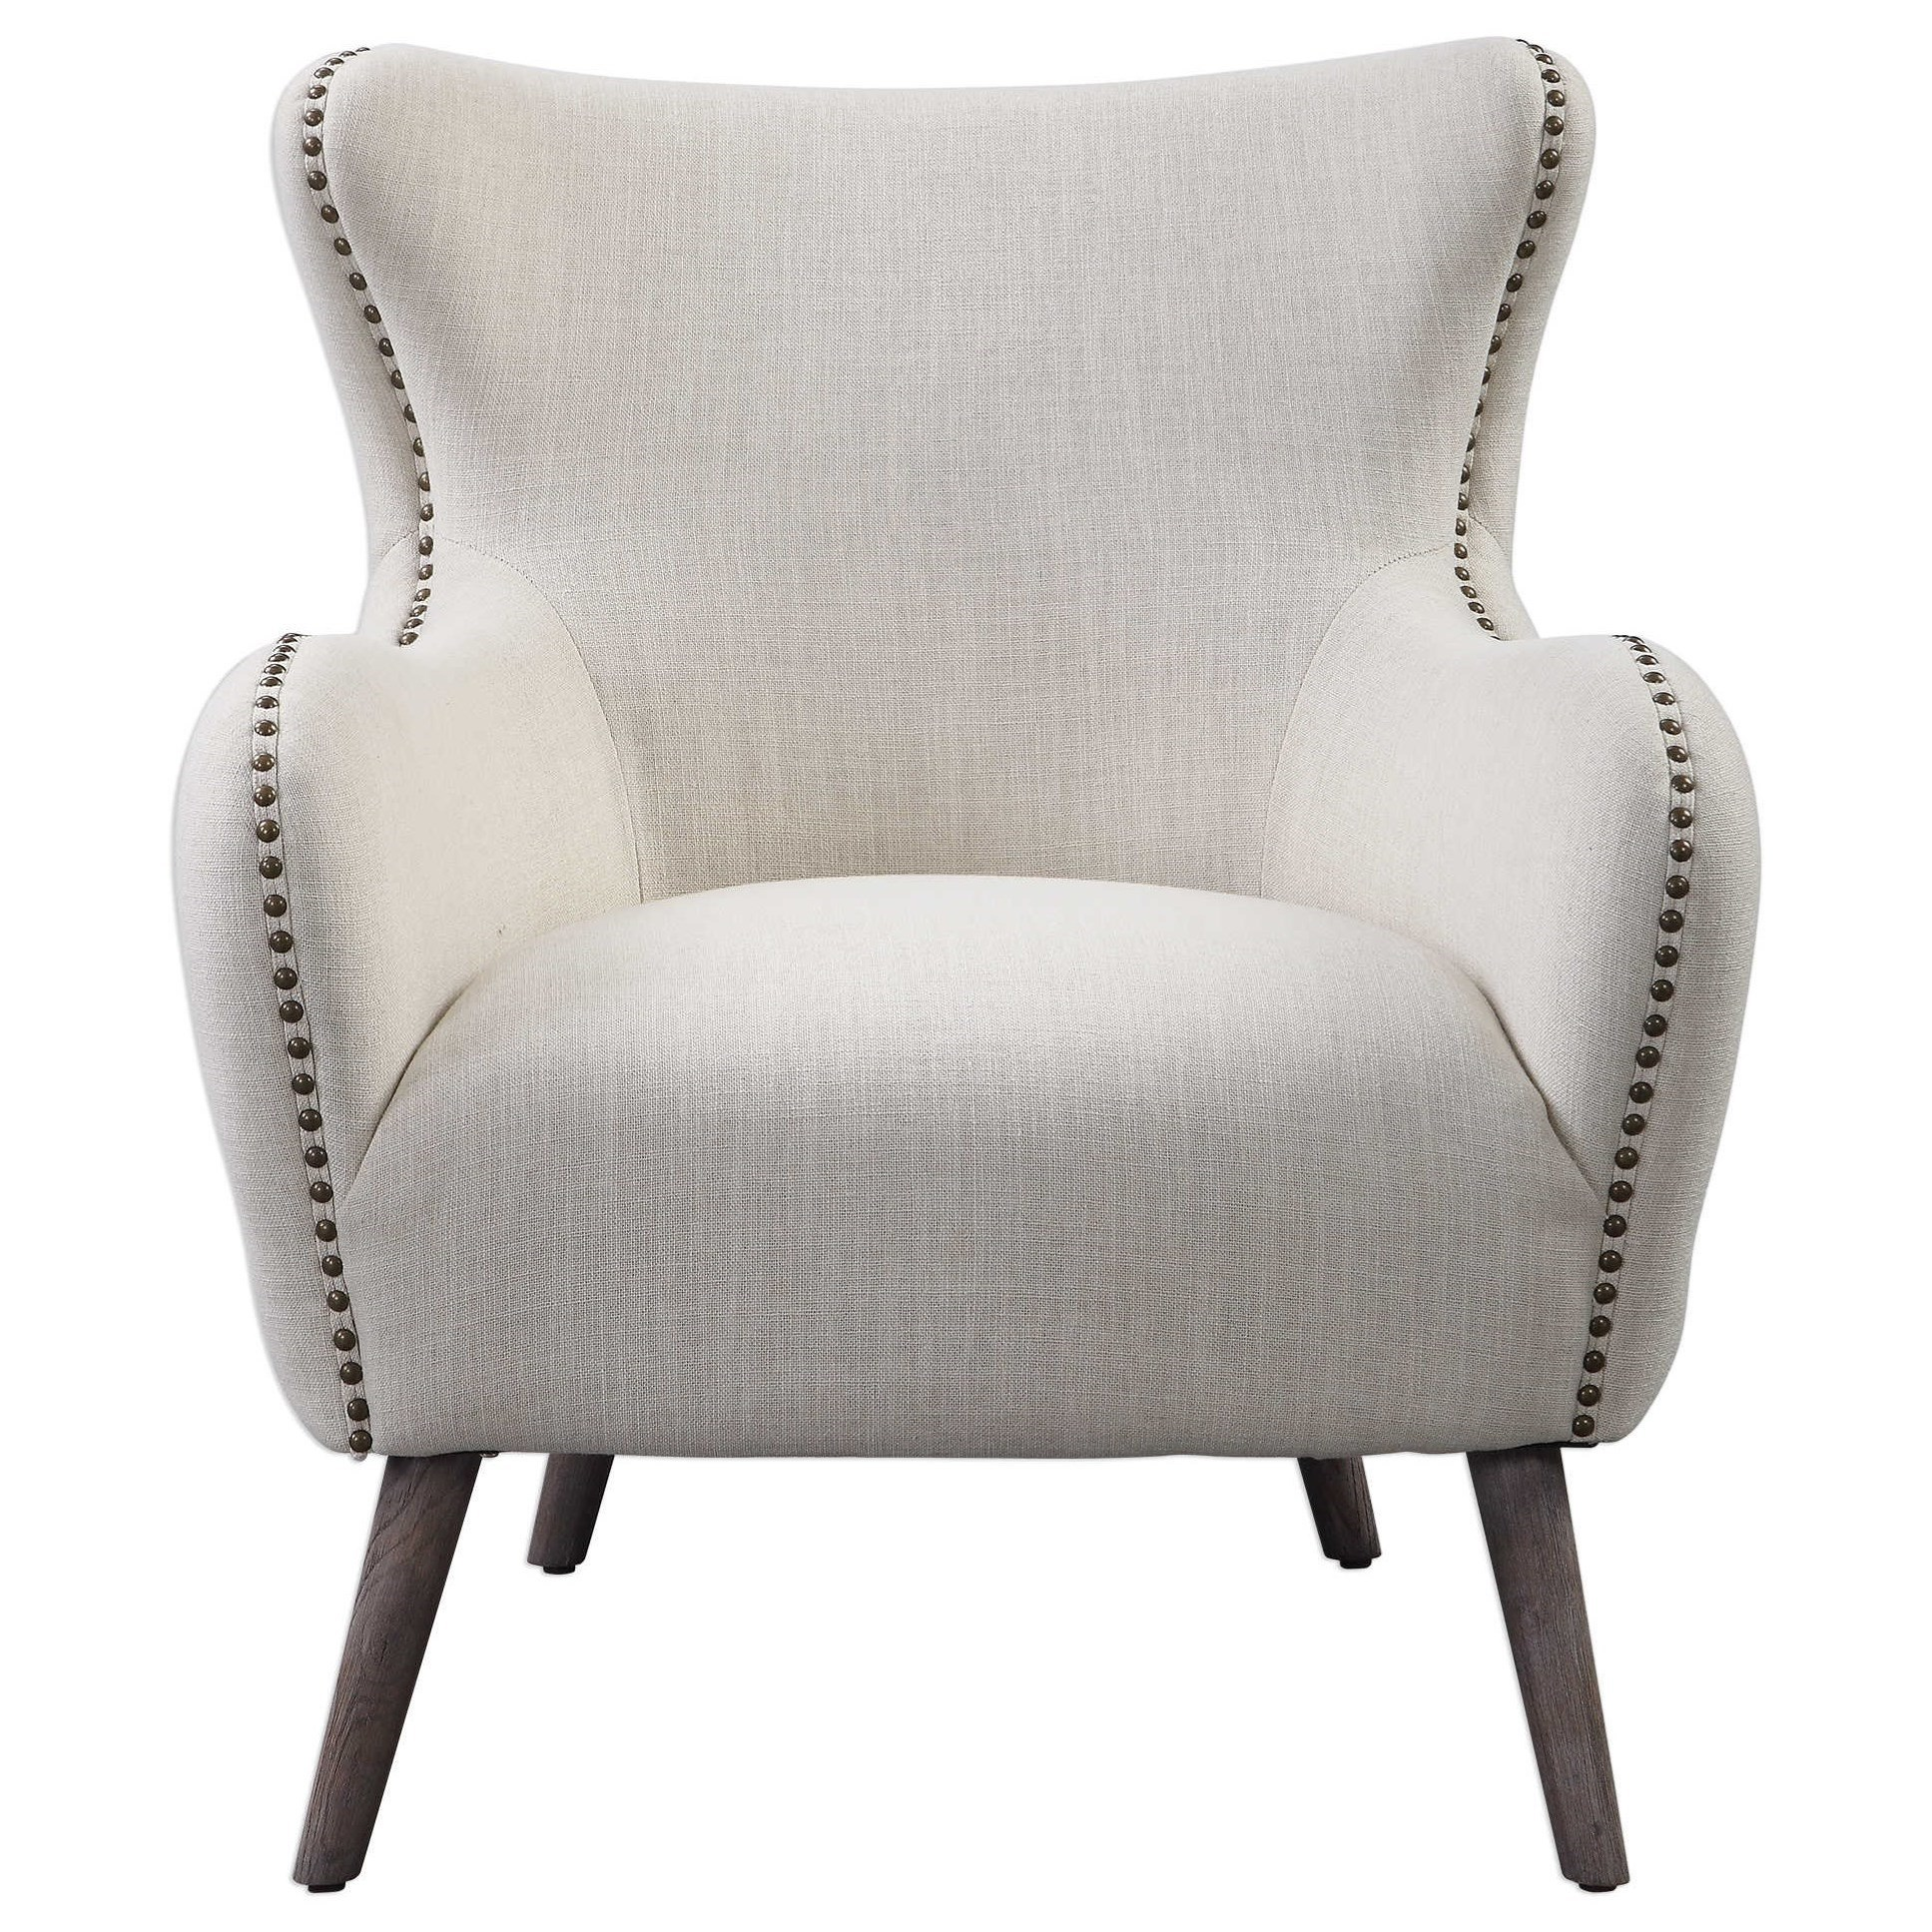 Accent Furniture - Accent Chairs Donya Cream Accent Chair by Uttermost at Mueller Furniture